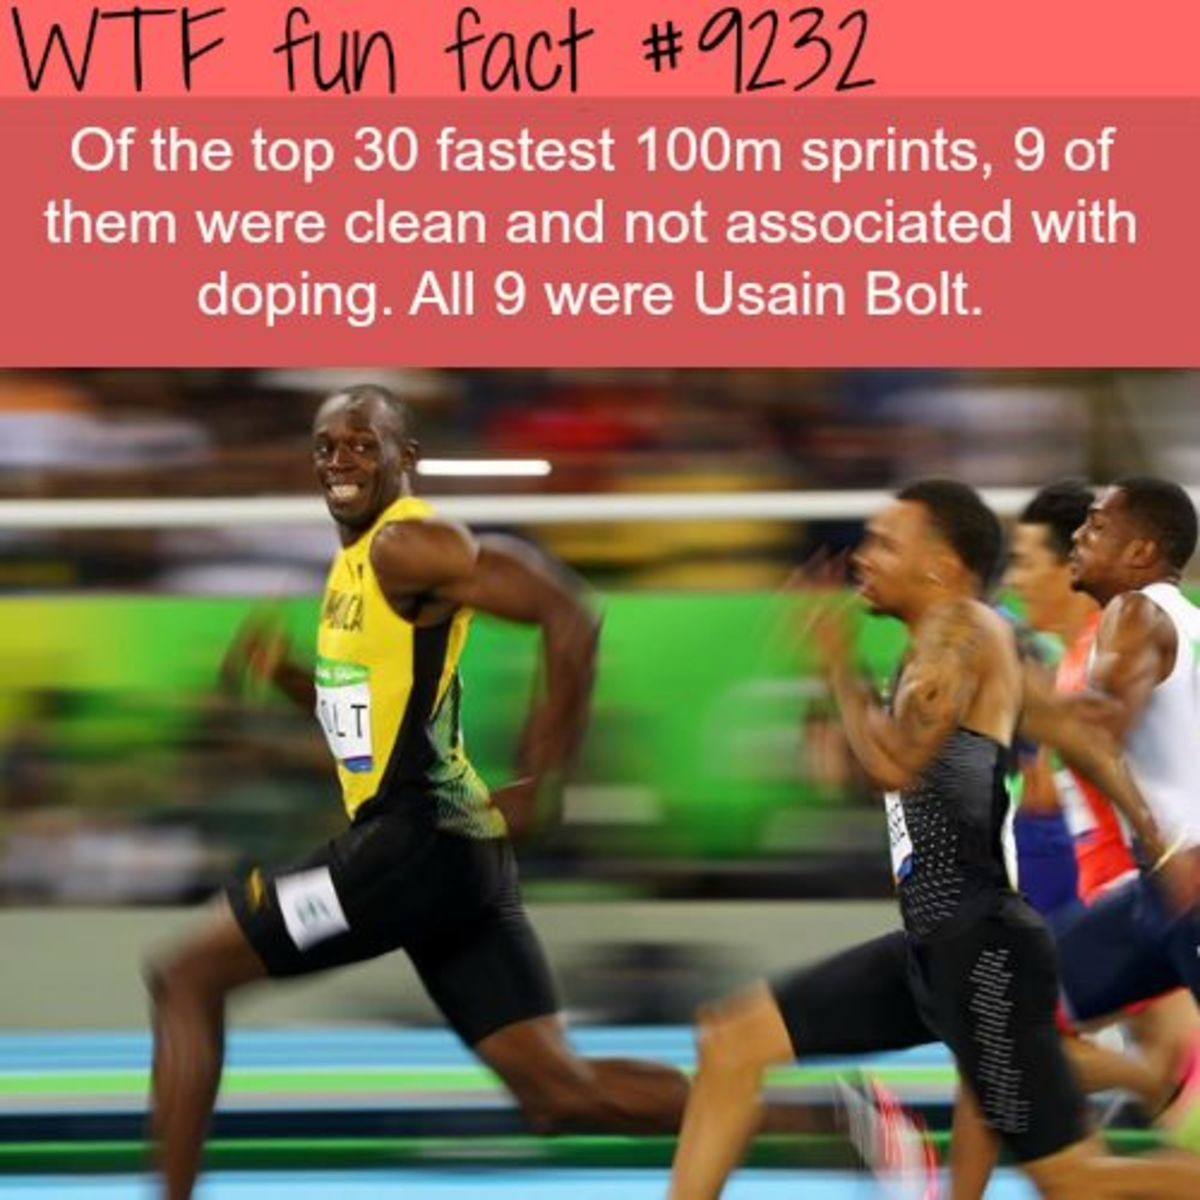 All The Fastest Men In History Are Usain Bolt. .. How do we know he doesn't have Eldritch tier doping procedures science doesn't know about?